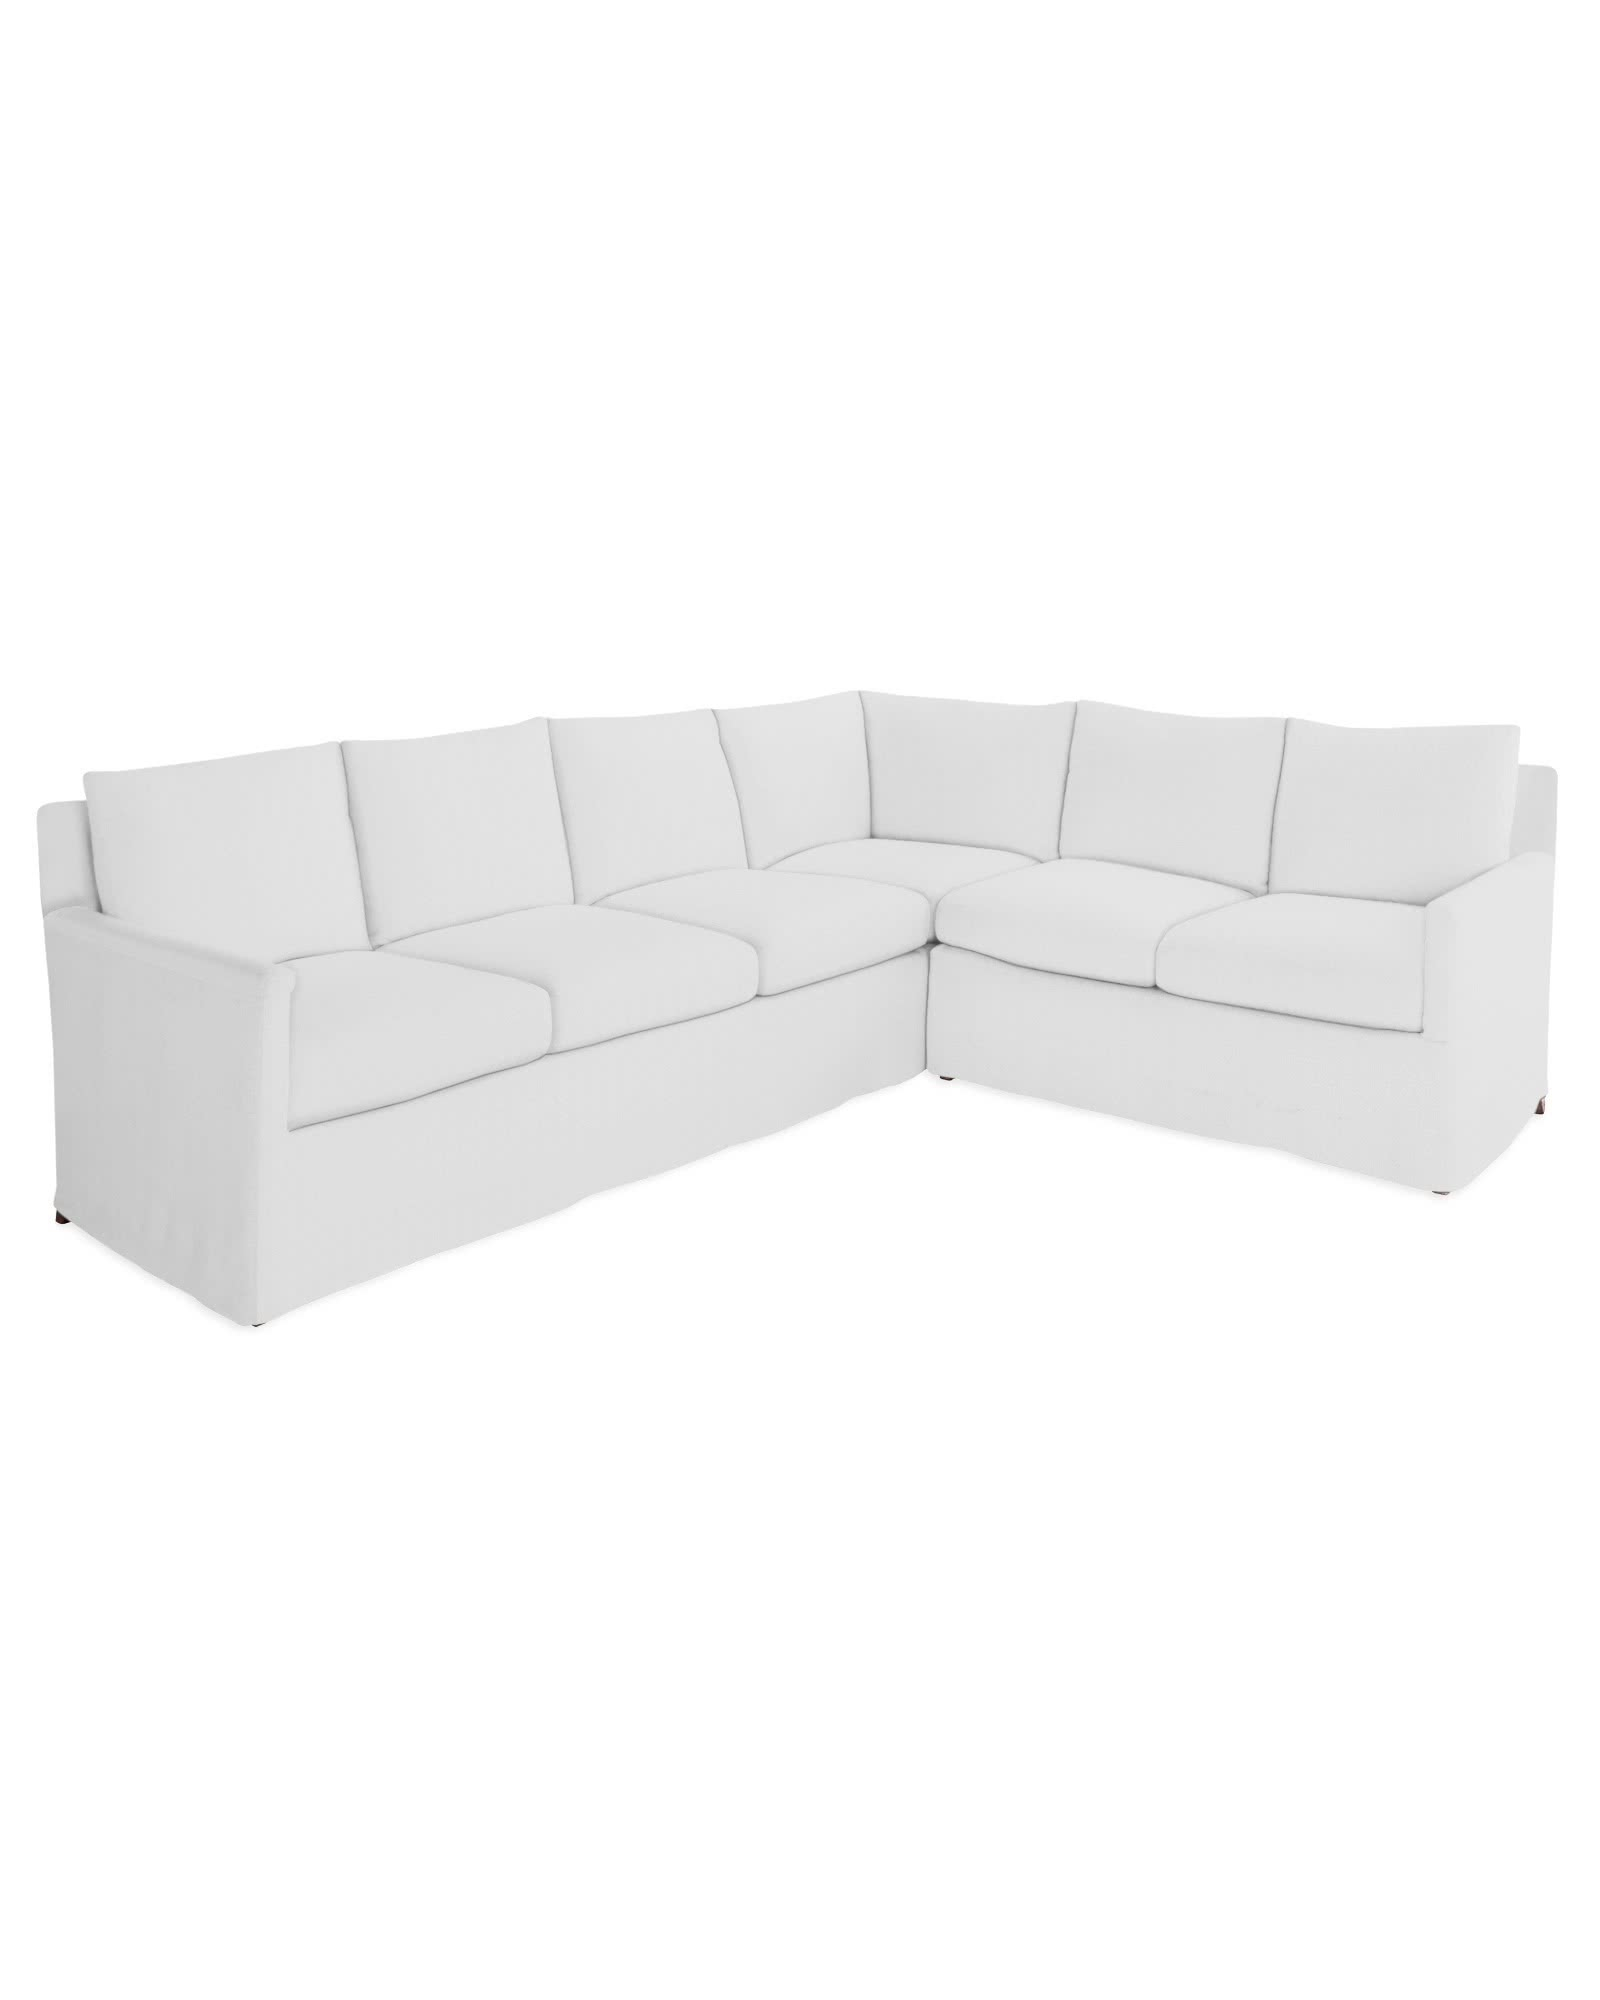 Spruce Street Slipcovered L-Sectional – Right-Facing,